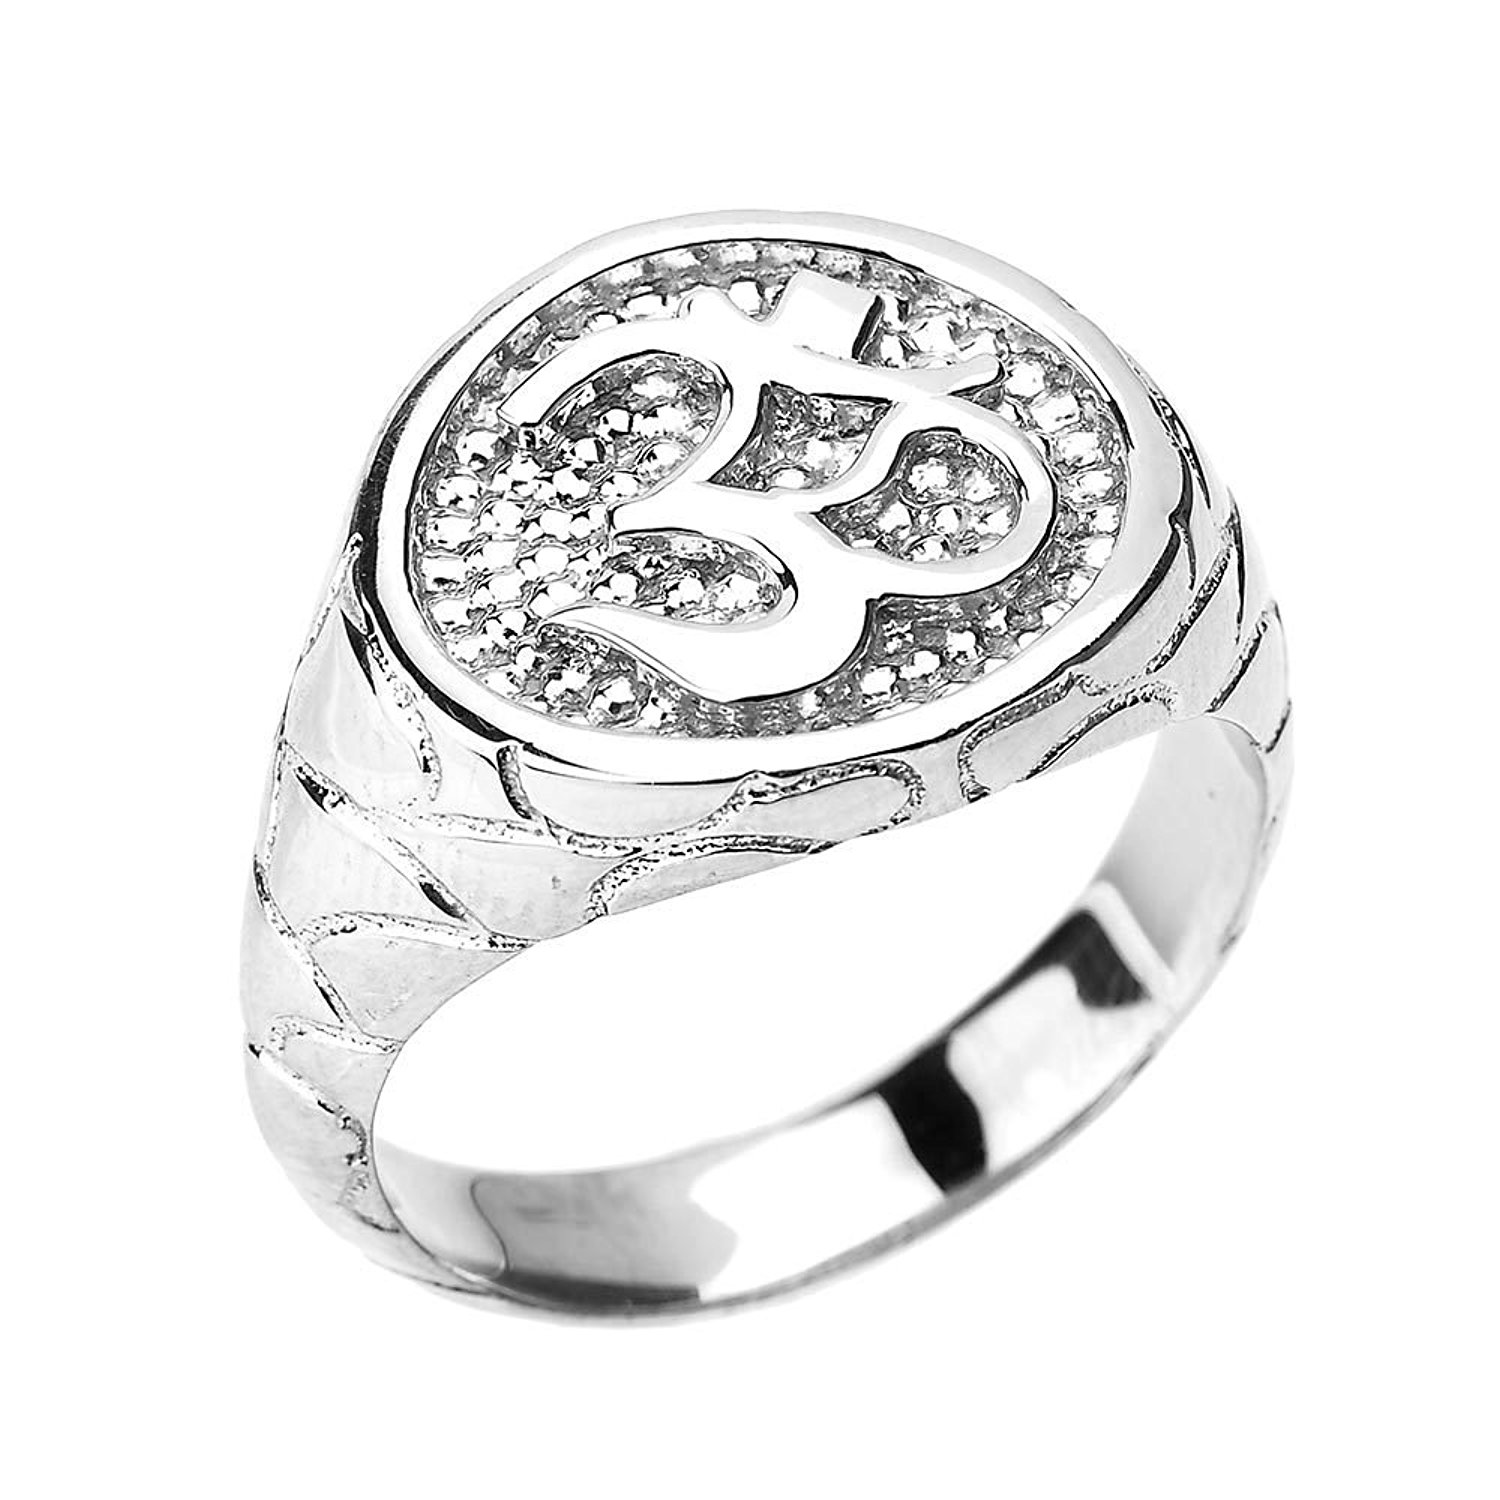 Men's 925 Sterling Silver Hindu Textured Band Om/Ohm Ring